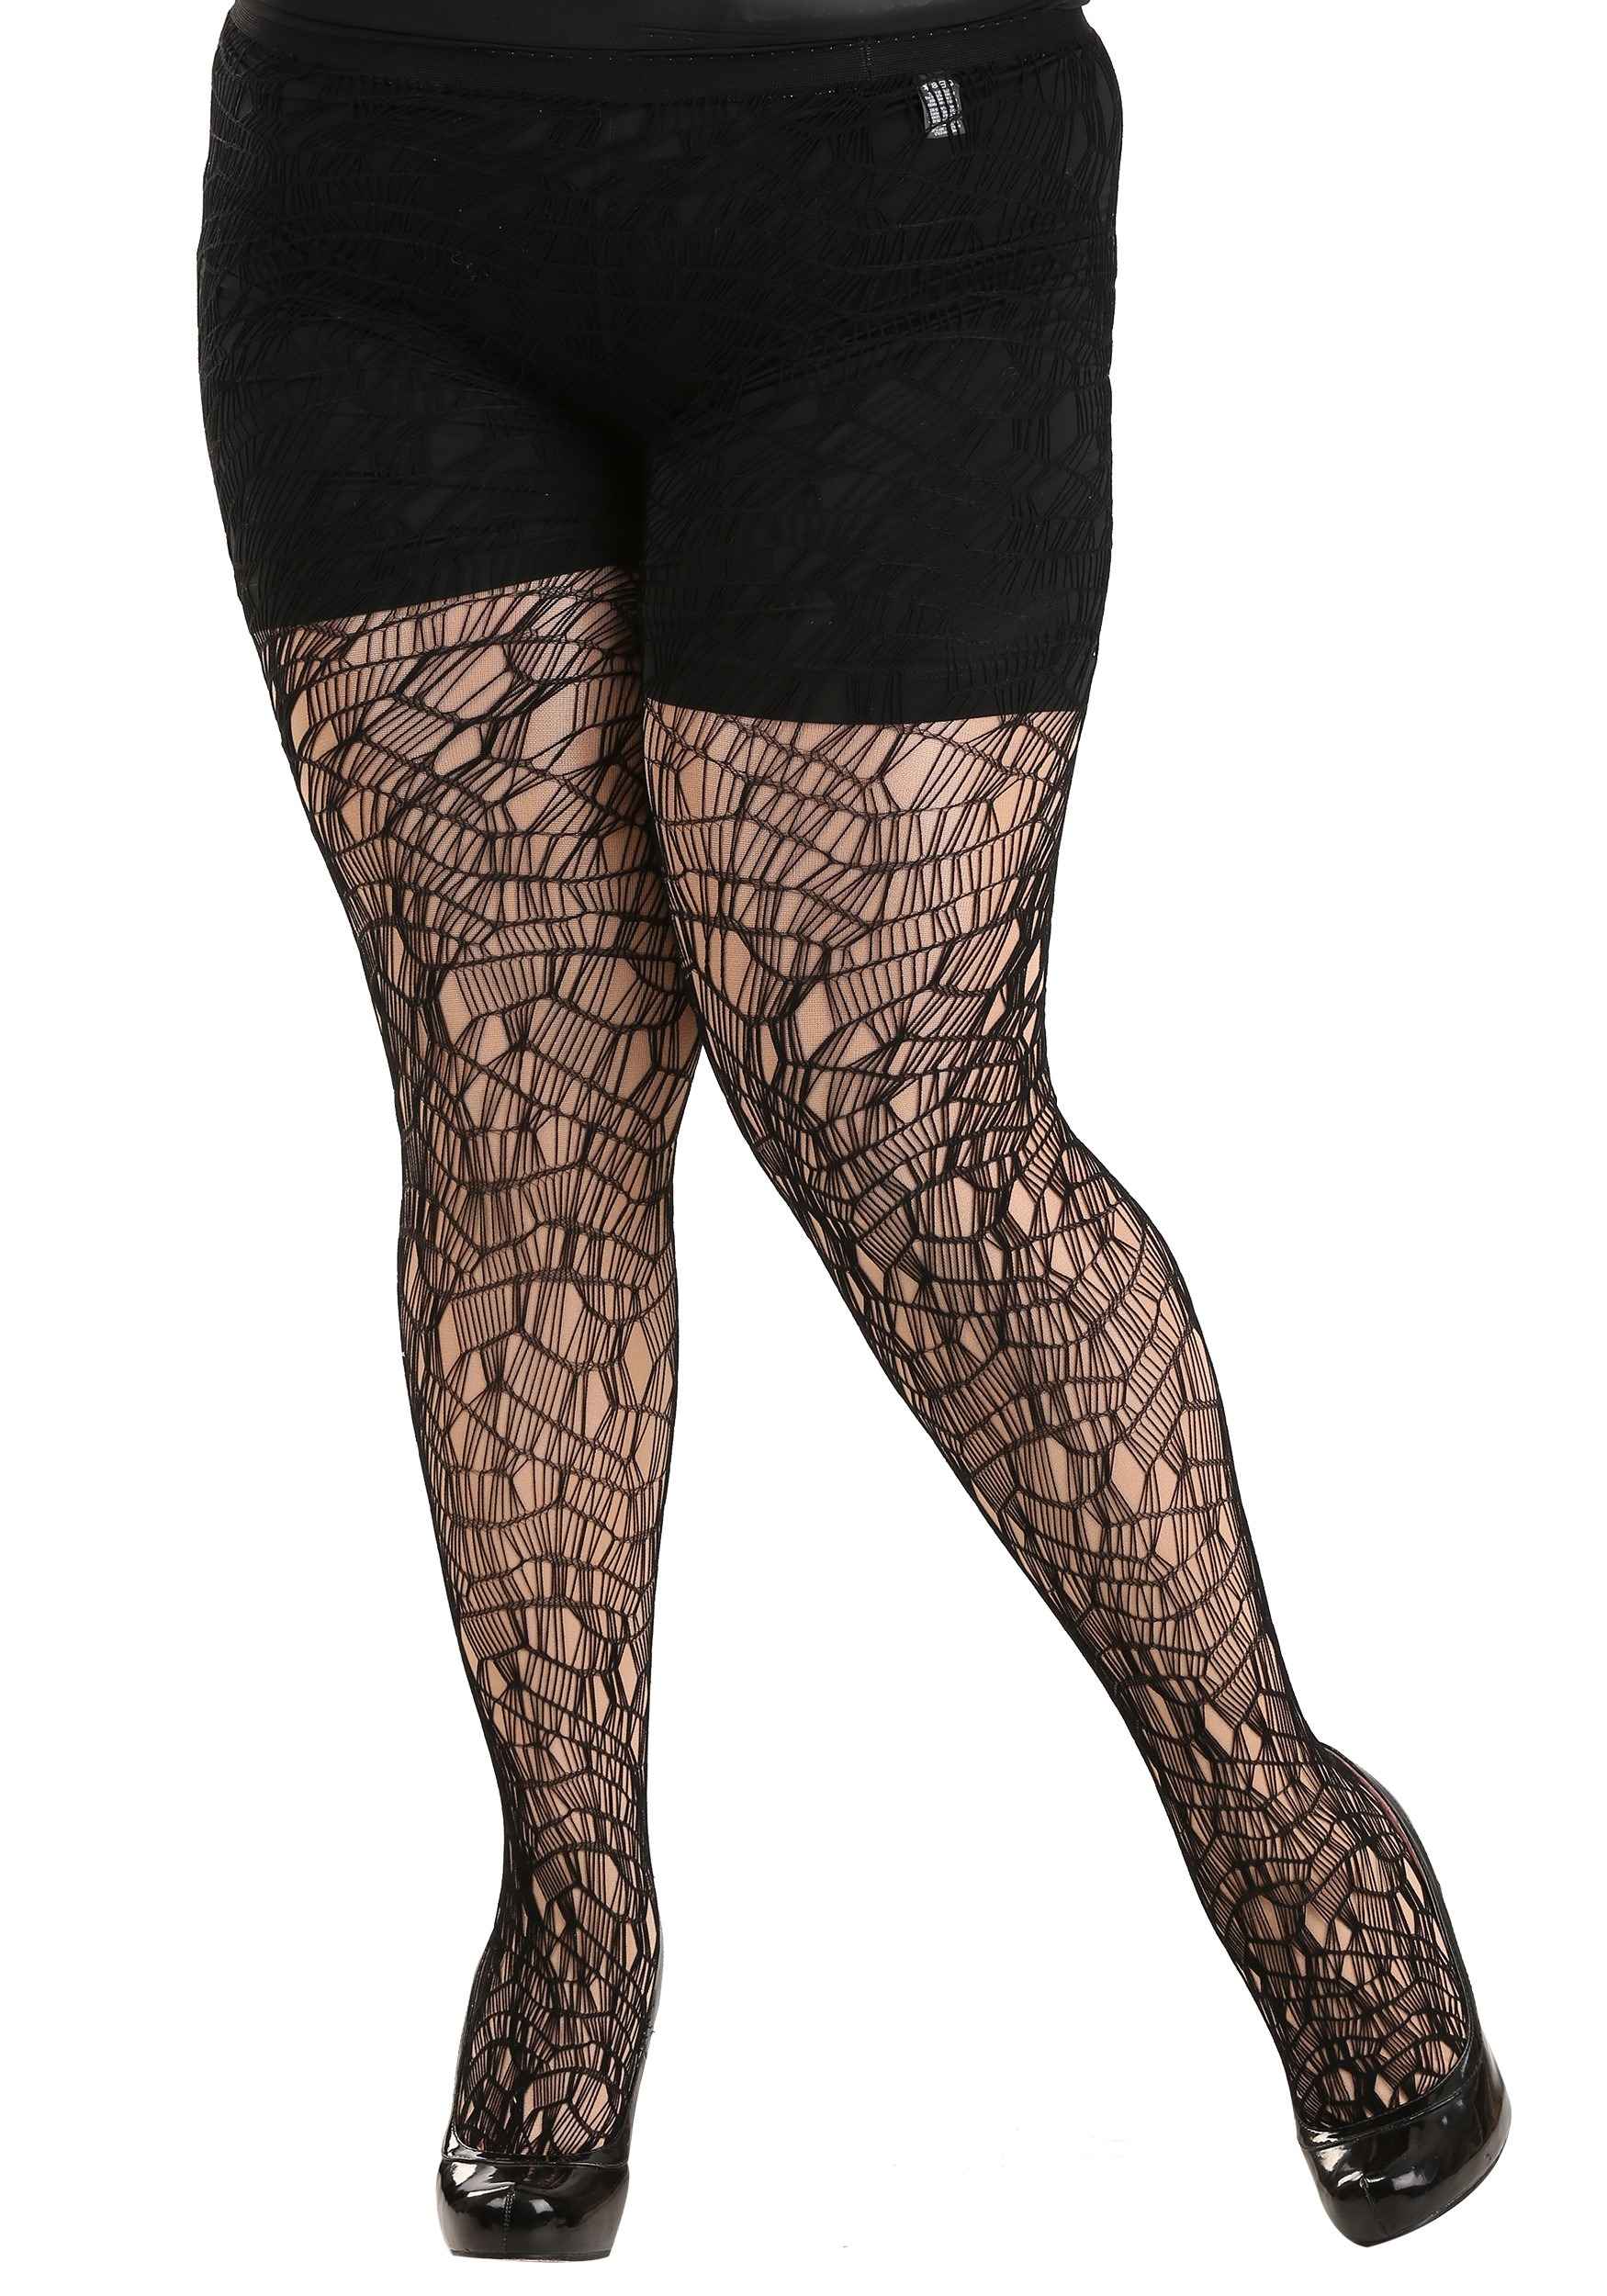 5279062fa02 Plus Size Ripped Tights for Women